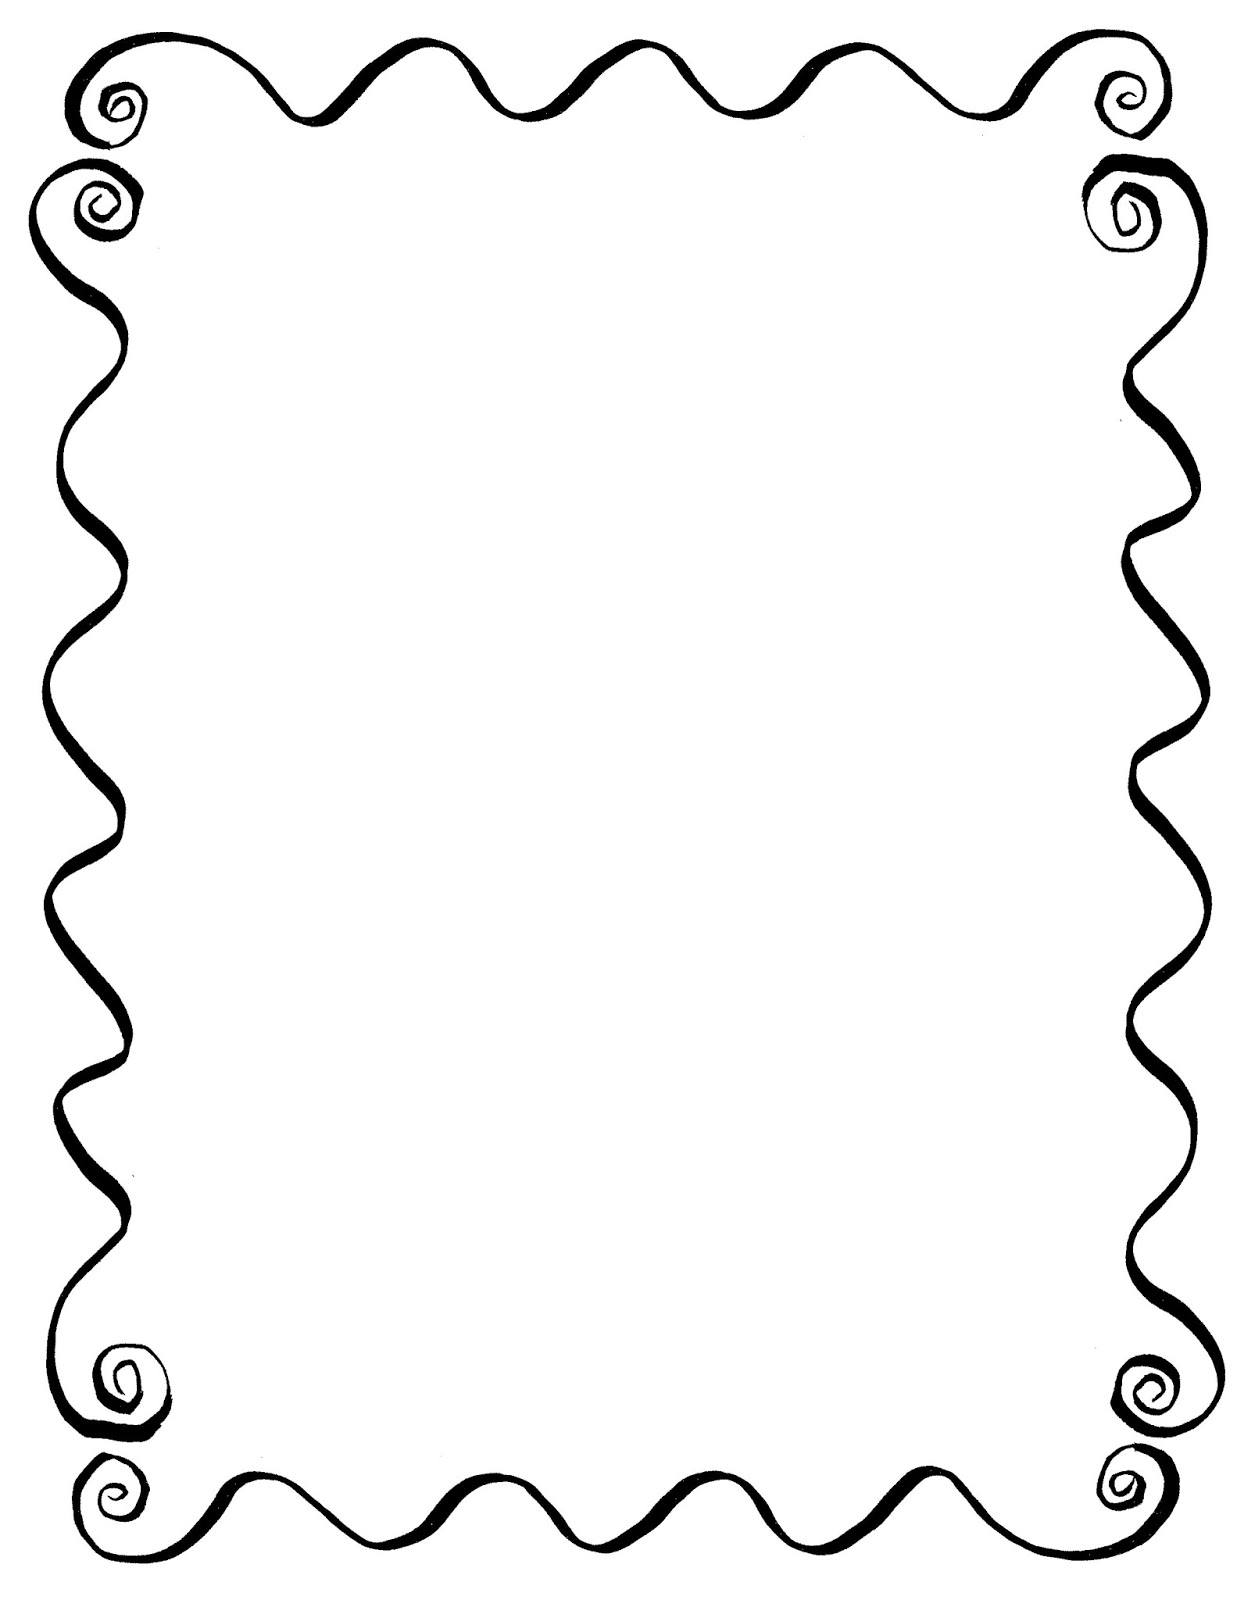 Frame Design Line Art : Digital stamp design hand drawn decorative frame